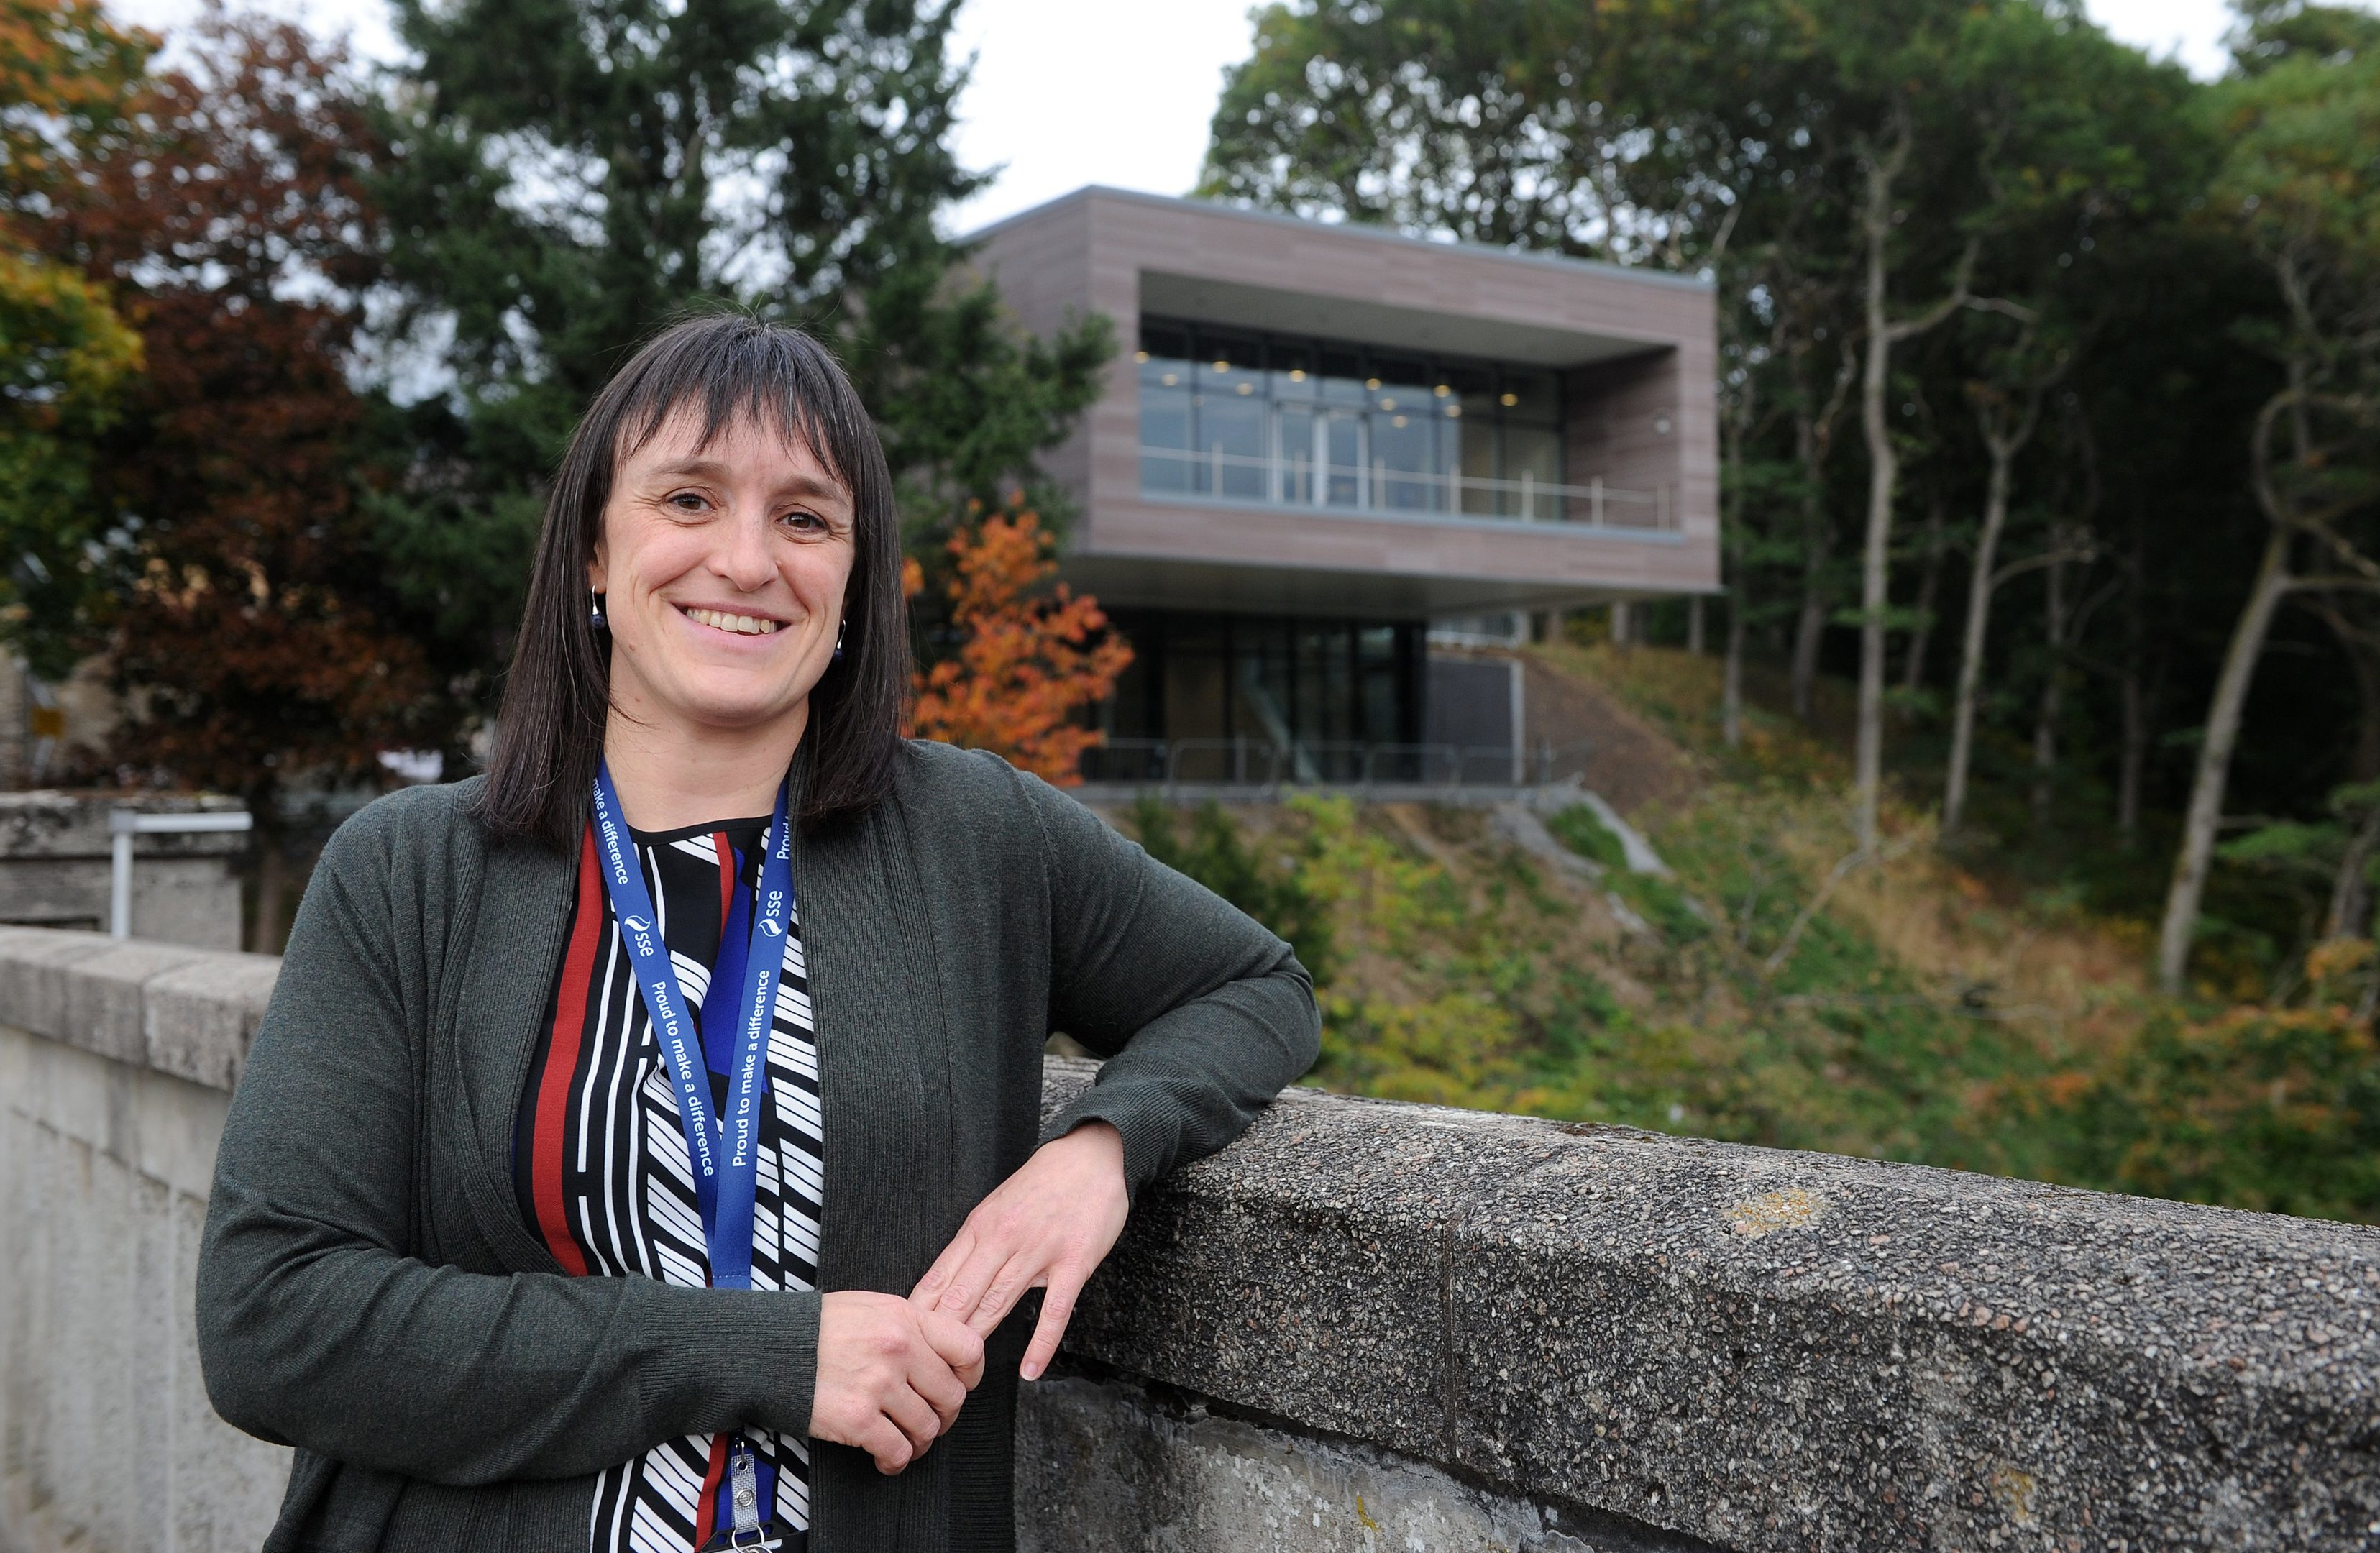 Lisa Daniels (Visitor Centre Manager) with the new centre in the background at Pitlochry dam.